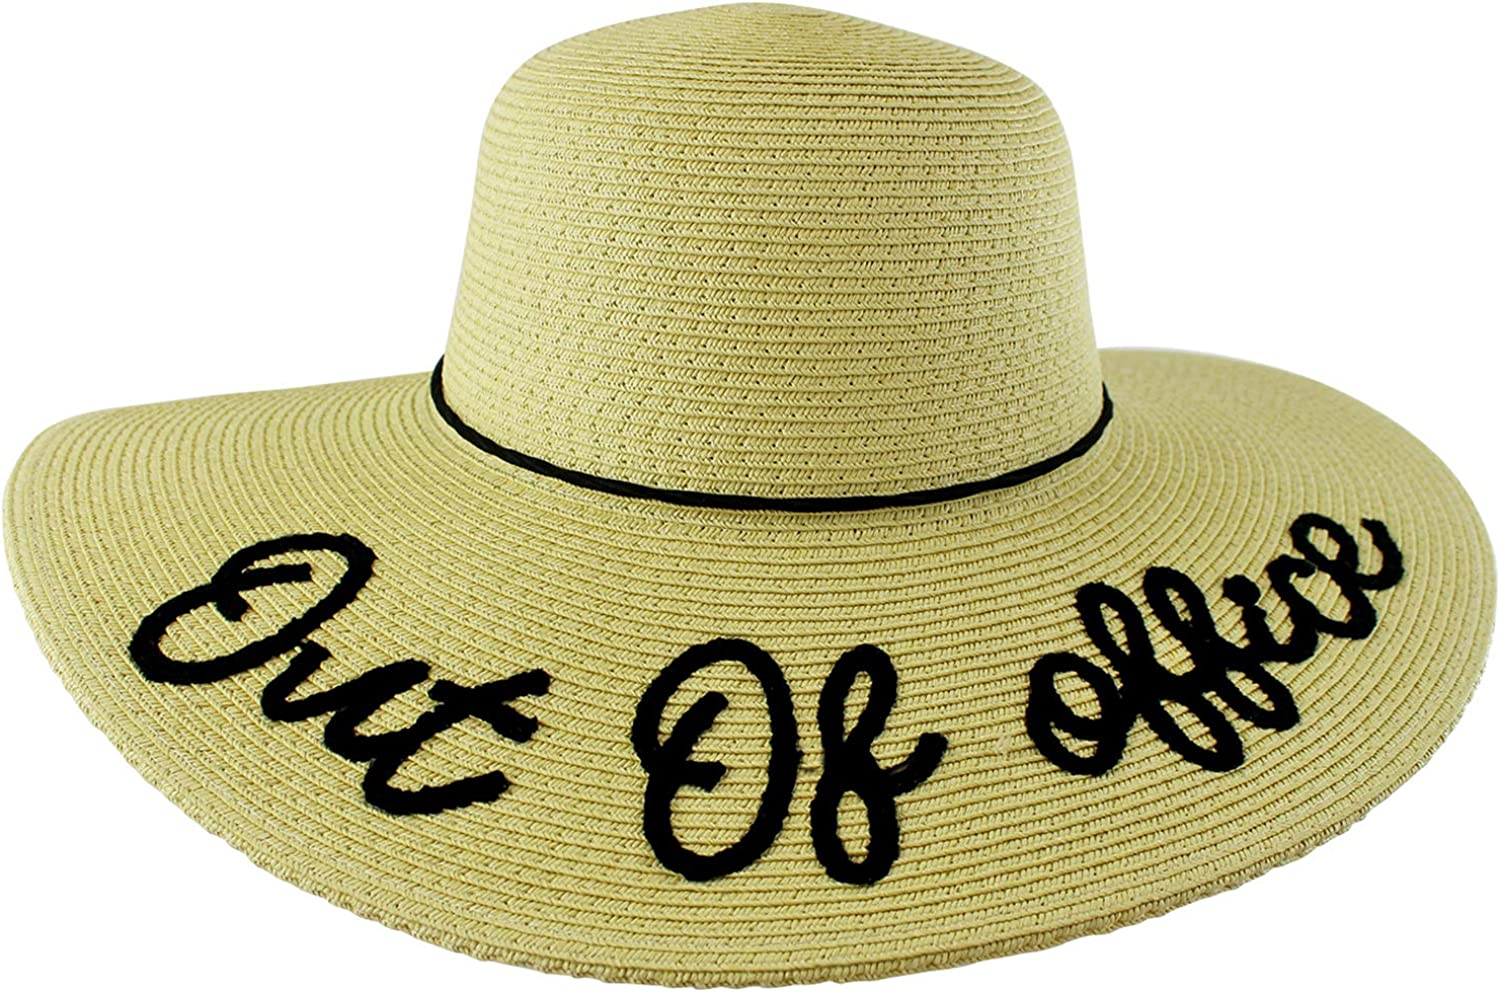 Out of Office Embroidered Beach Floppy Sun Hat Beige